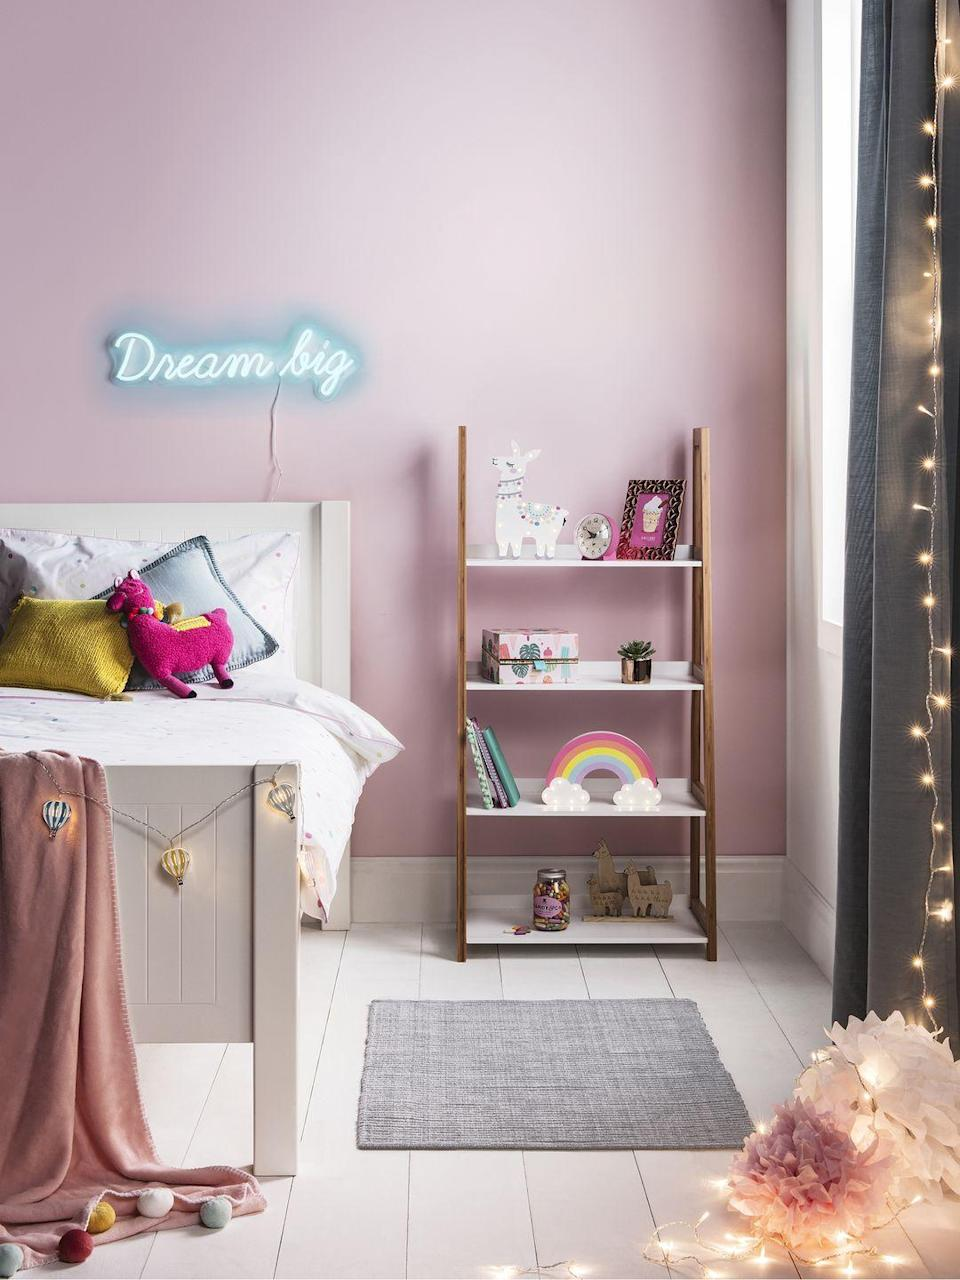 """<p>From fairy lights to neon signs, often it's the finishing touches that can have the most transformative effect in a bedroom. With sugary pink walls and grey curtains, it's the lights that bring some character to this bedroom space.</p><p>Pictured: Sundae Children's Collection, <a href=""""https://go.redirectingat.com?id=127X1599956&url=https%3A%2F%2Fwww.lights4fun.co.uk%2Fcollections%2Findoor-childrens-lights&sref=https%3A%2F%2Fwww.housebeautiful.com%2Fuk%2Fdecorate%2Fbedroom%2Fg35589644%2Fgirls-bedroom-ideas%2F"""" rel=""""nofollow noopener"""" target=""""_blank"""" data-ylk=""""slk:Lights4fun"""" class=""""link rapid-noclick-resp"""">Lights4fun</a></p>"""